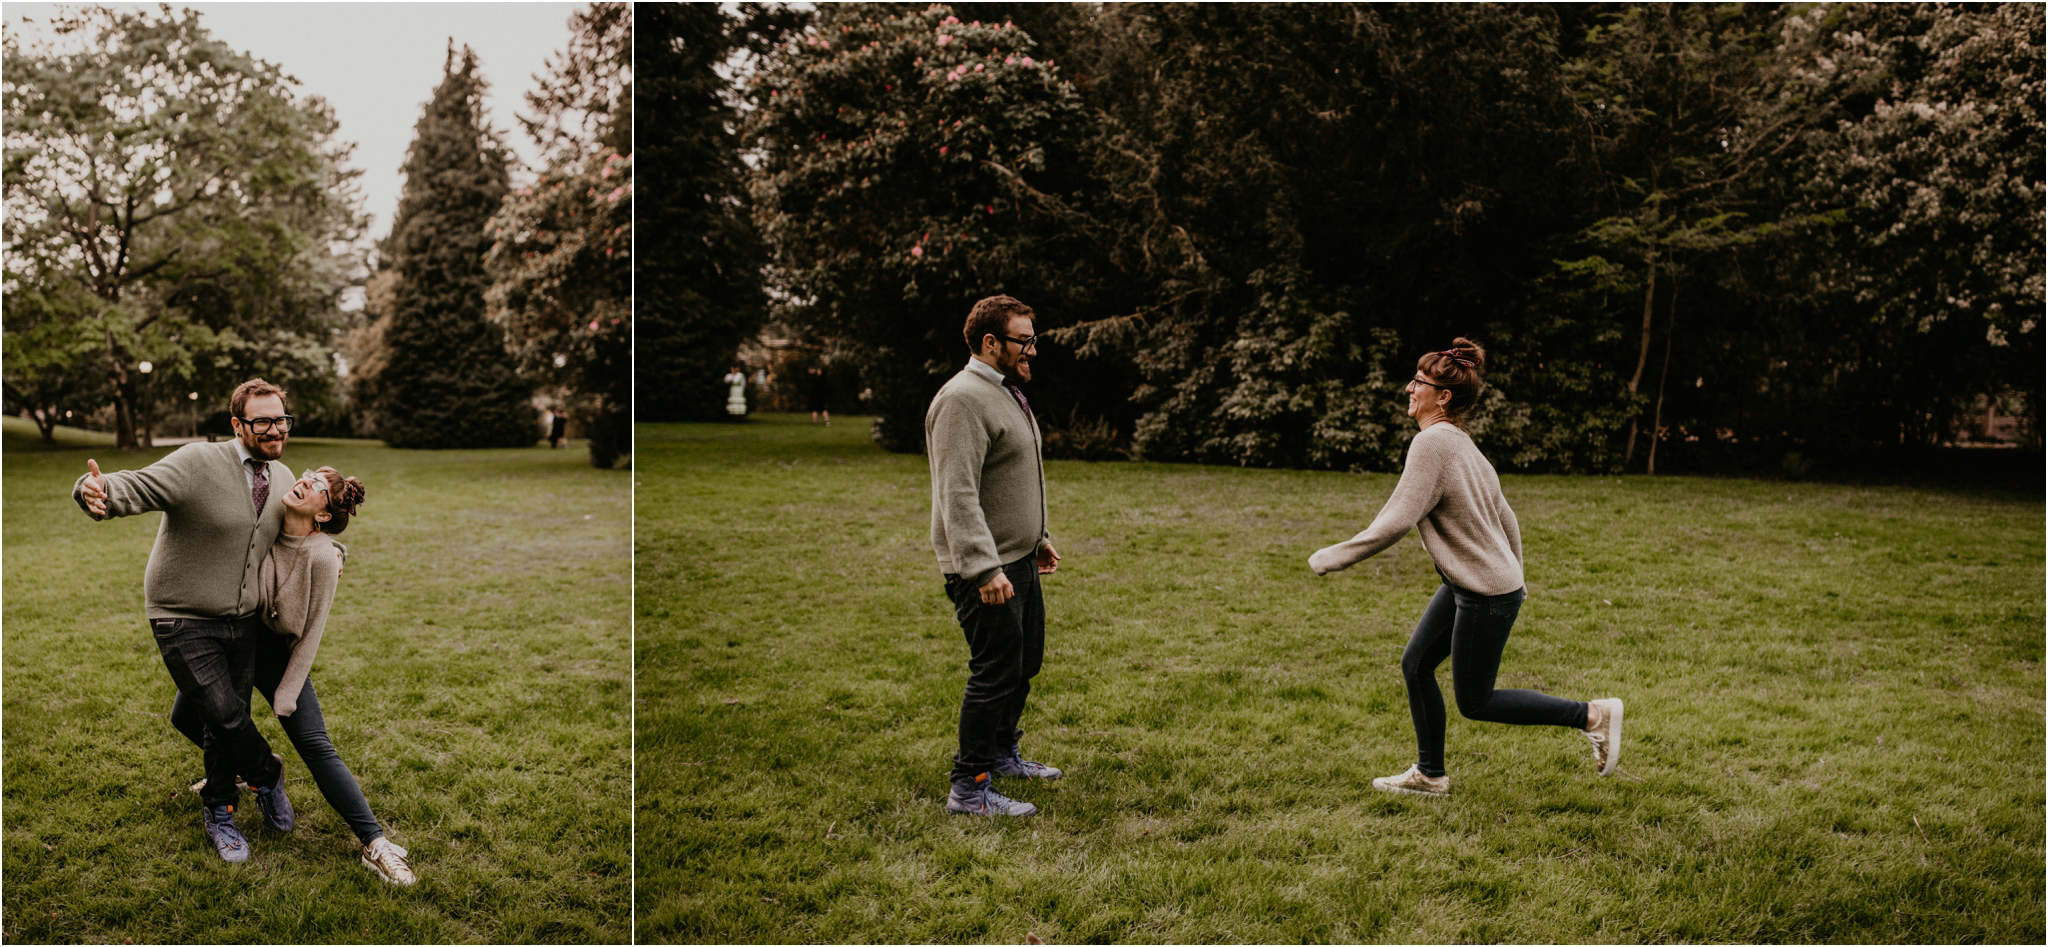 jaimie-and-jake-ballard-seattle-engagement-session-028.jpg